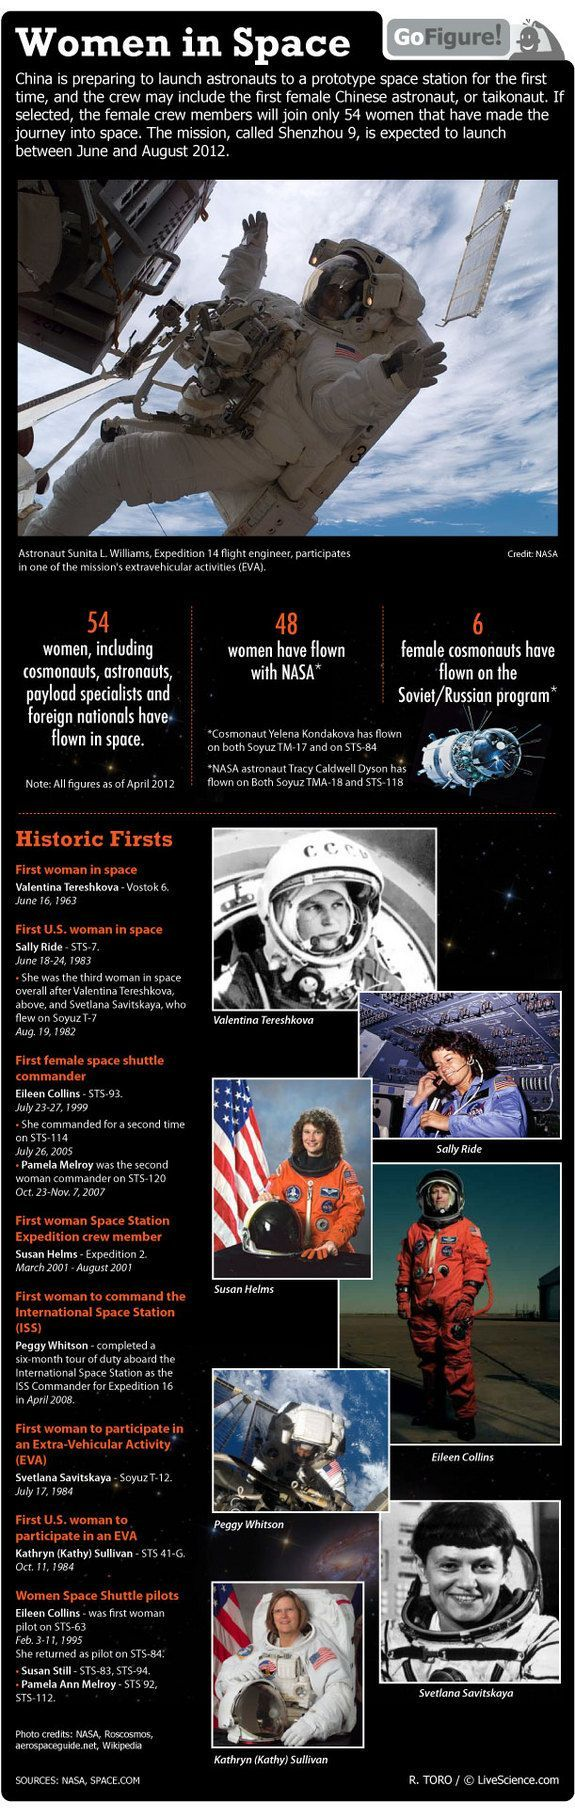 Meet some of the first female space explorers.